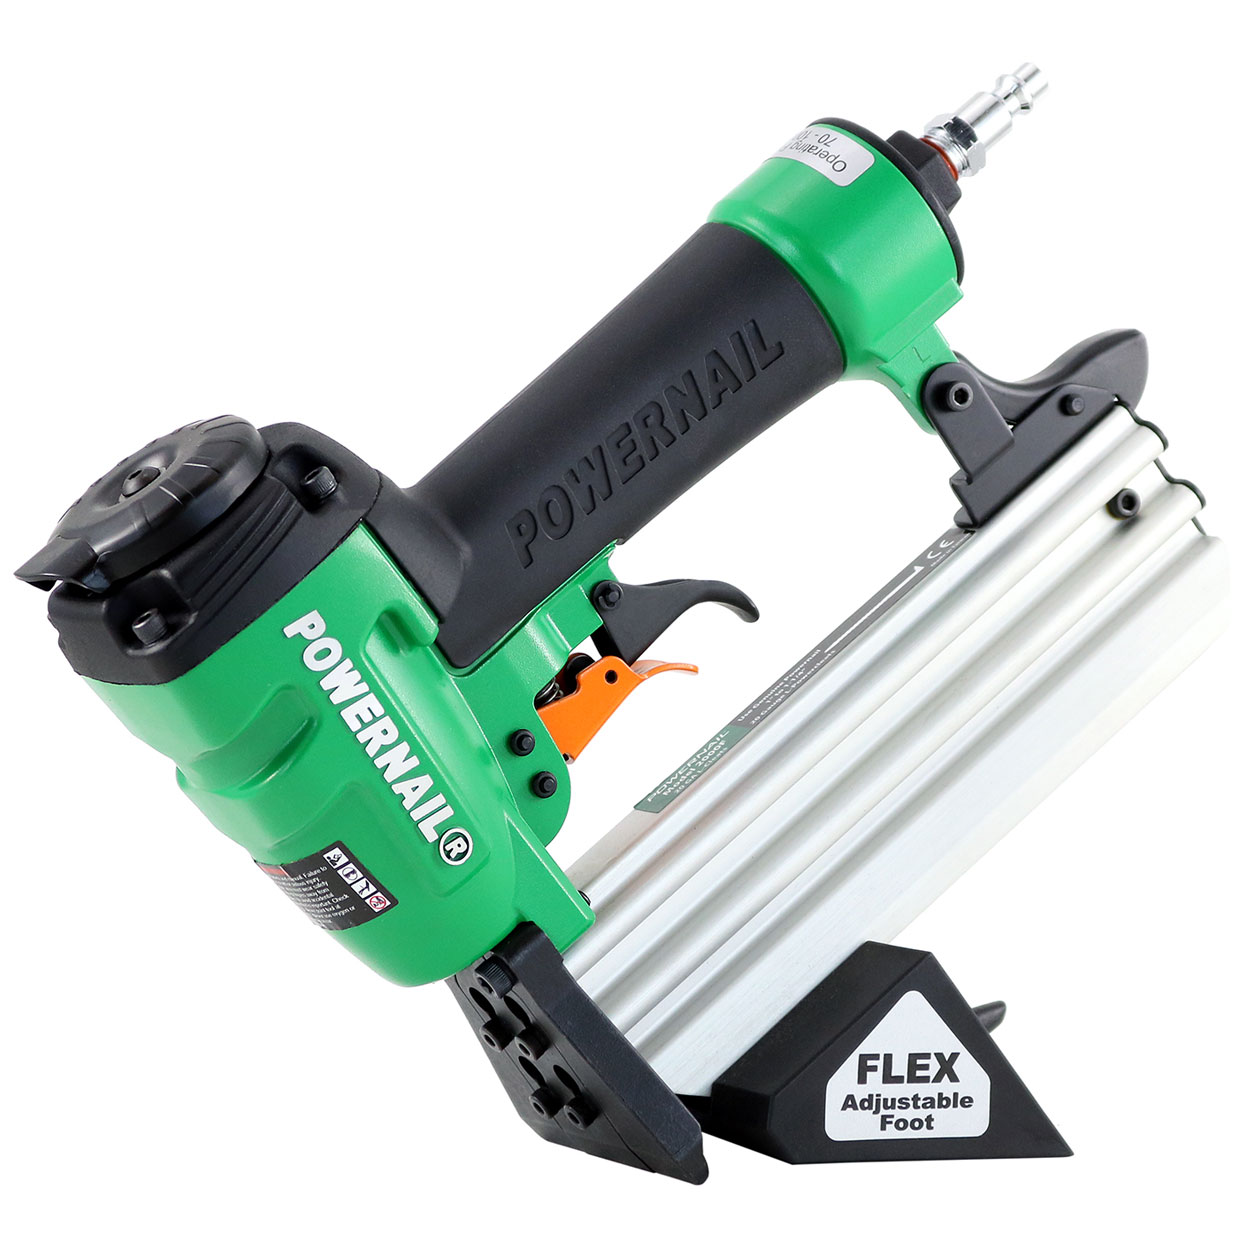 2000F – Pneumatic 20-Gauge Flooring Nailer